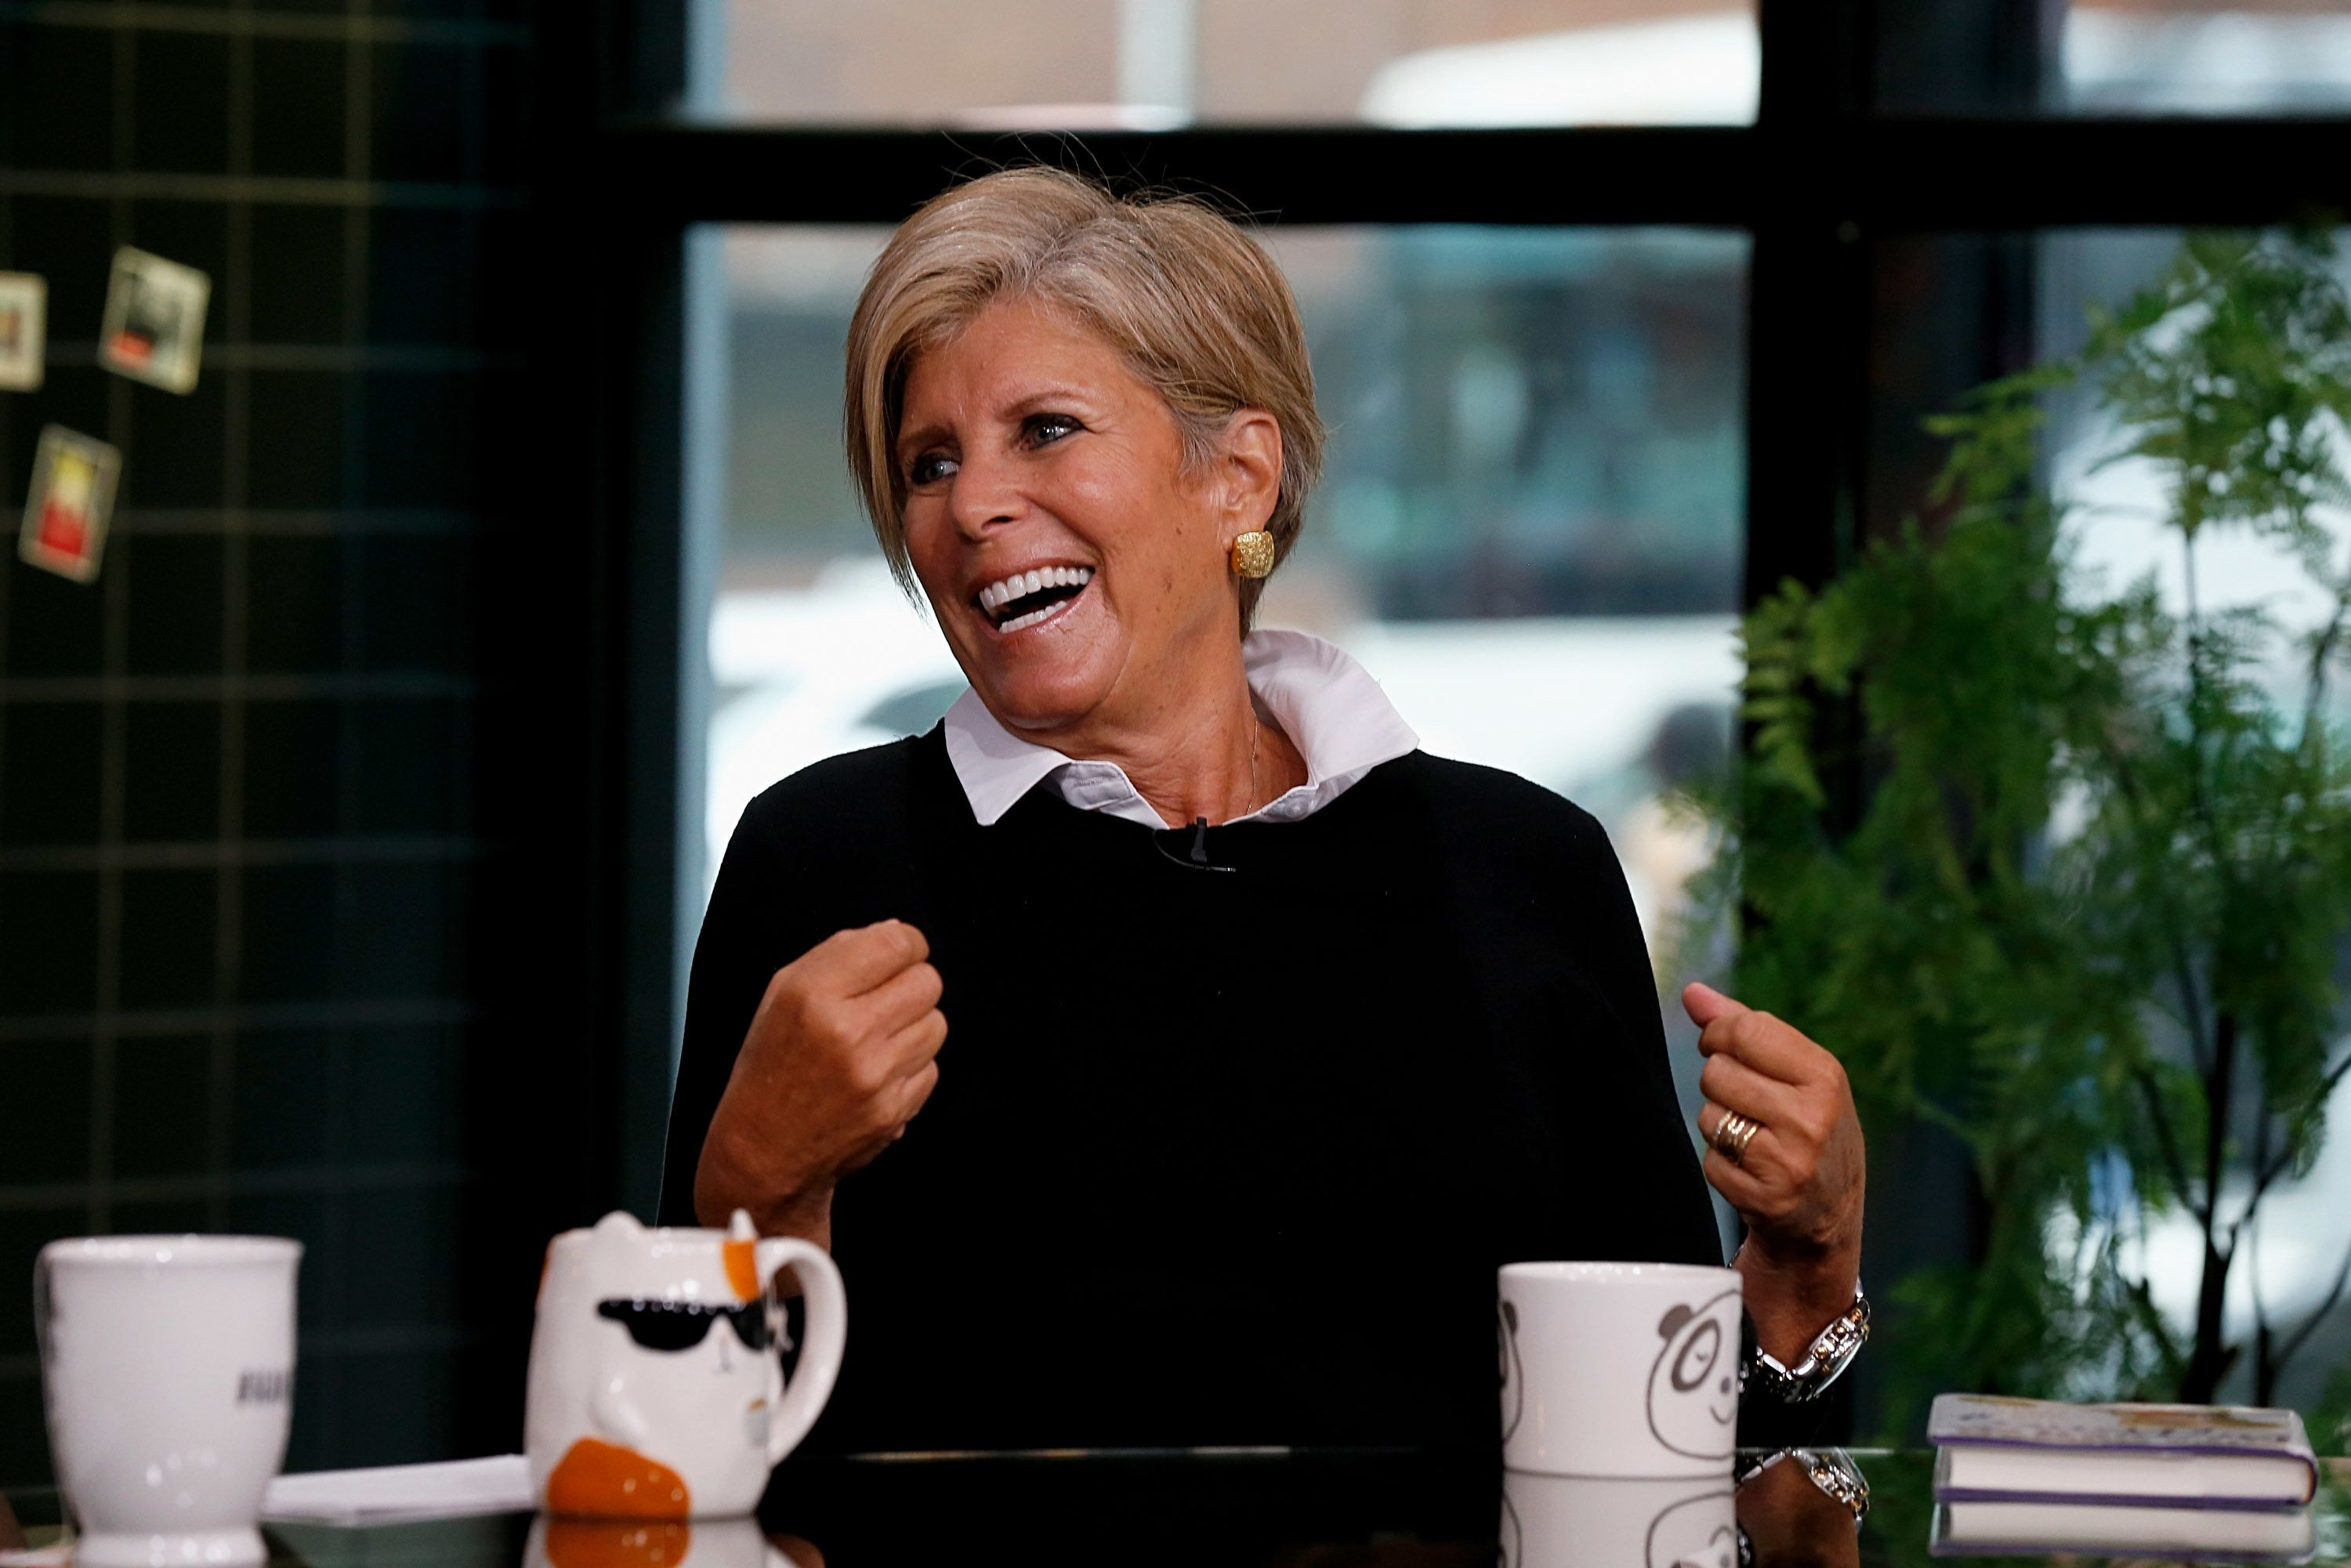 NEW YORK, NY - SEPTEMBER 17:  Author Suze Orman visits Build Brunch to discuss her Book 'Women & Money' at Build Studio on September 17, 2018 in New York City.  (Photo by Dominik Bindl/Getty Images)